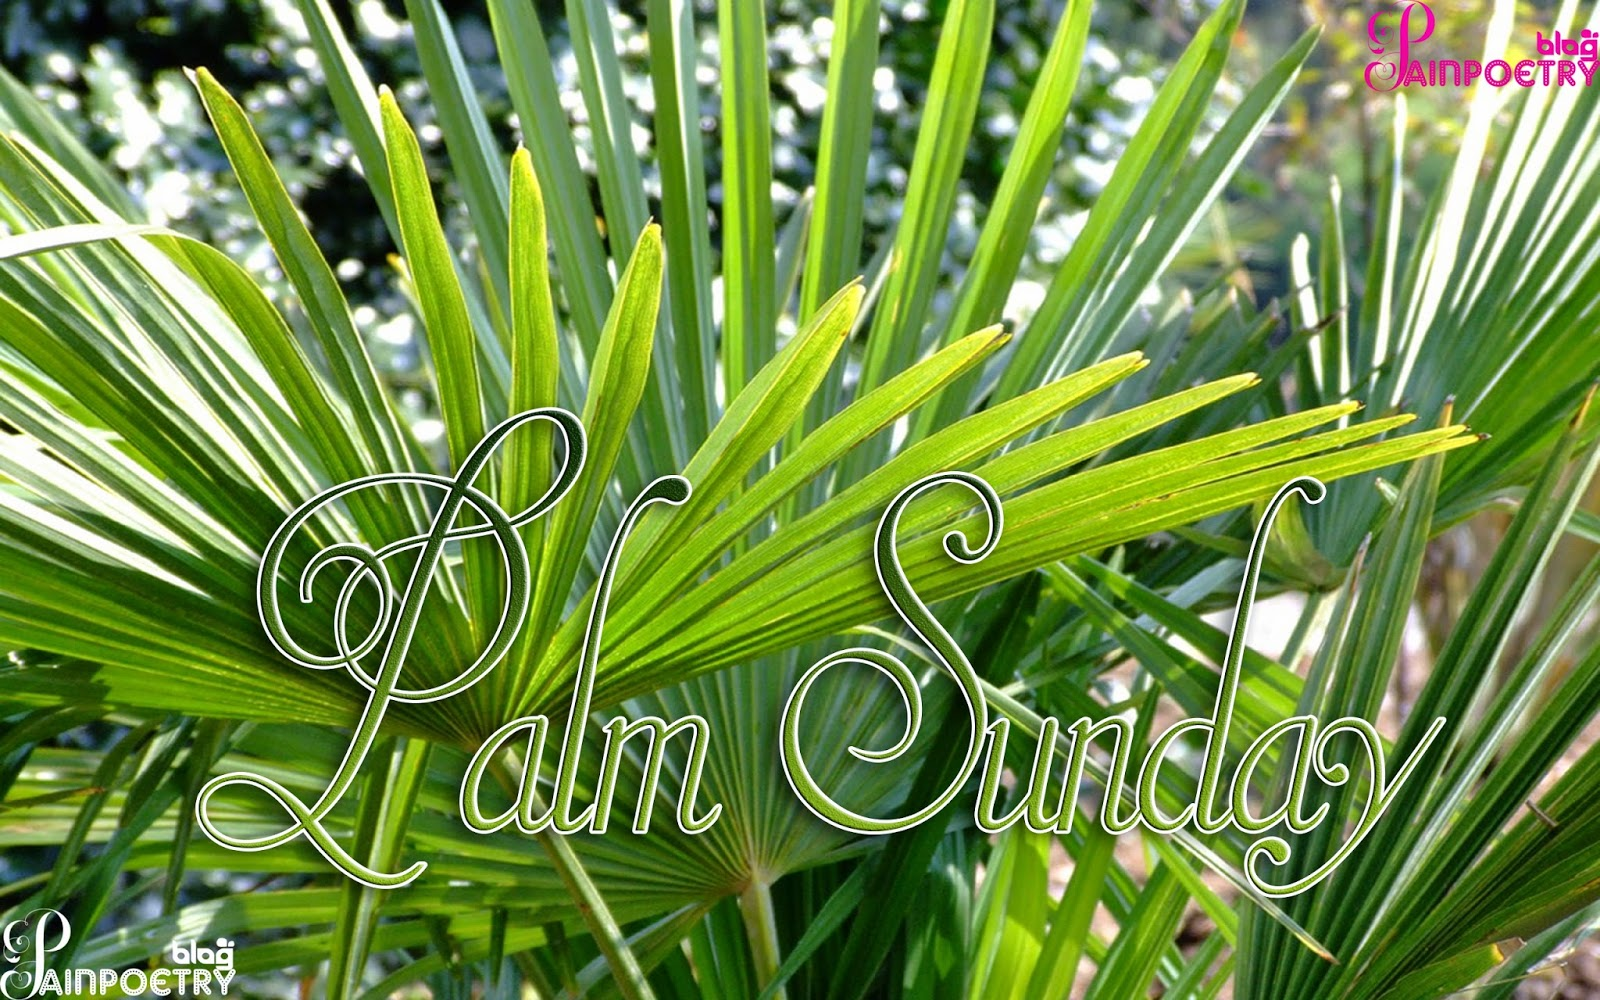 Palm-Sunday-Palm-Image-Wallpaper-HD